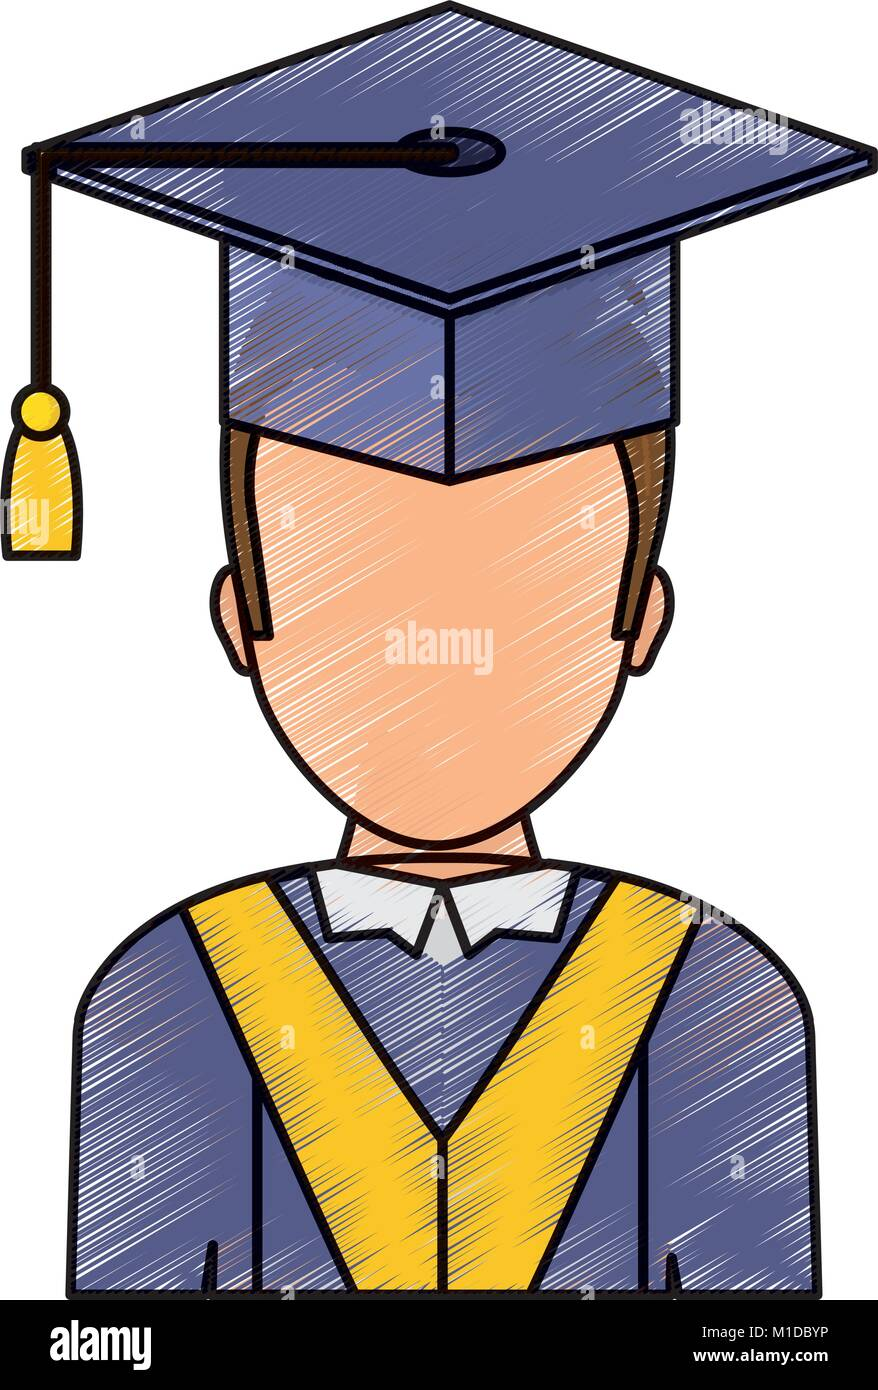 Cartoon Graduate Man Graduation Gown Stock Photos & Cartoon Graduate ...